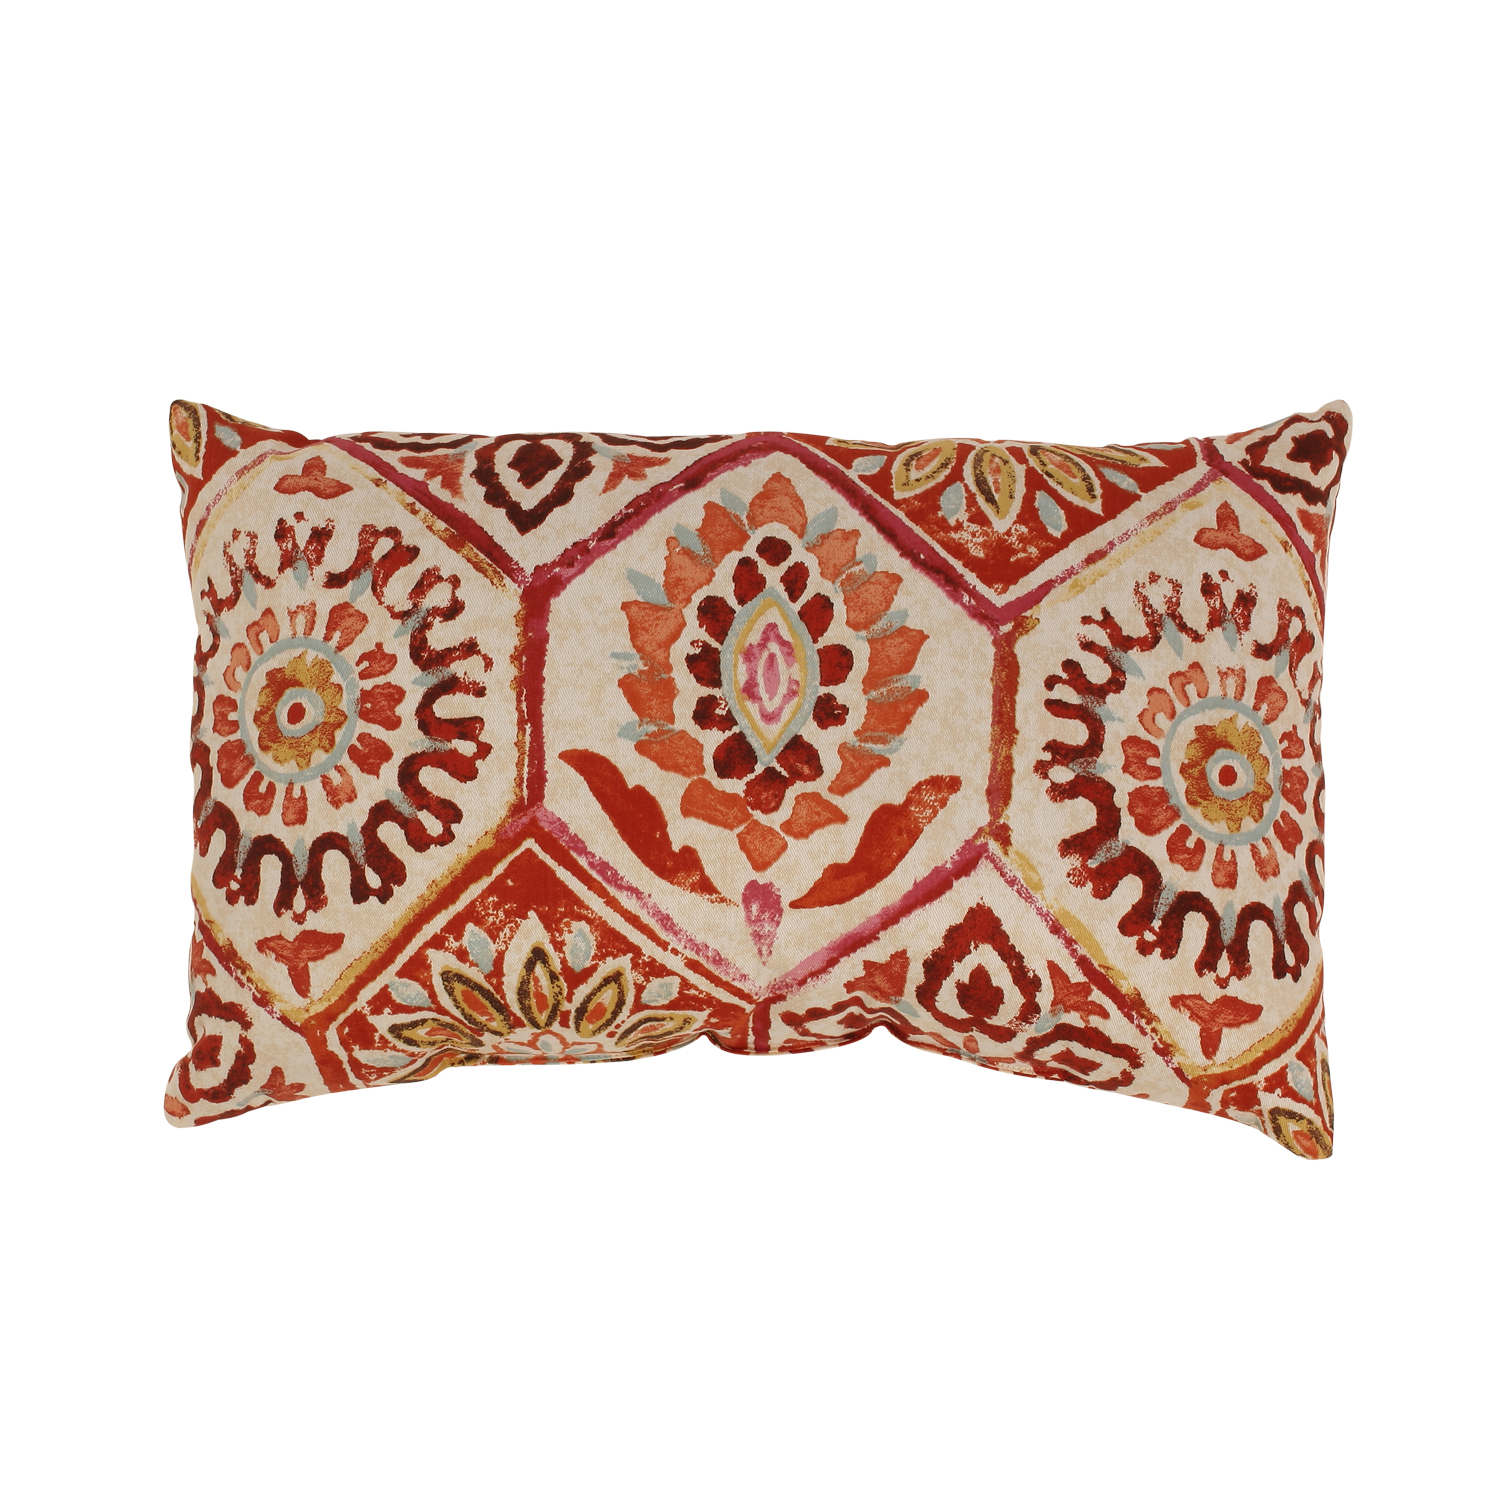 Luxury Sofa Pillows with Elegant Pattern for Living Room Interior: Crimson Sofa Pillows